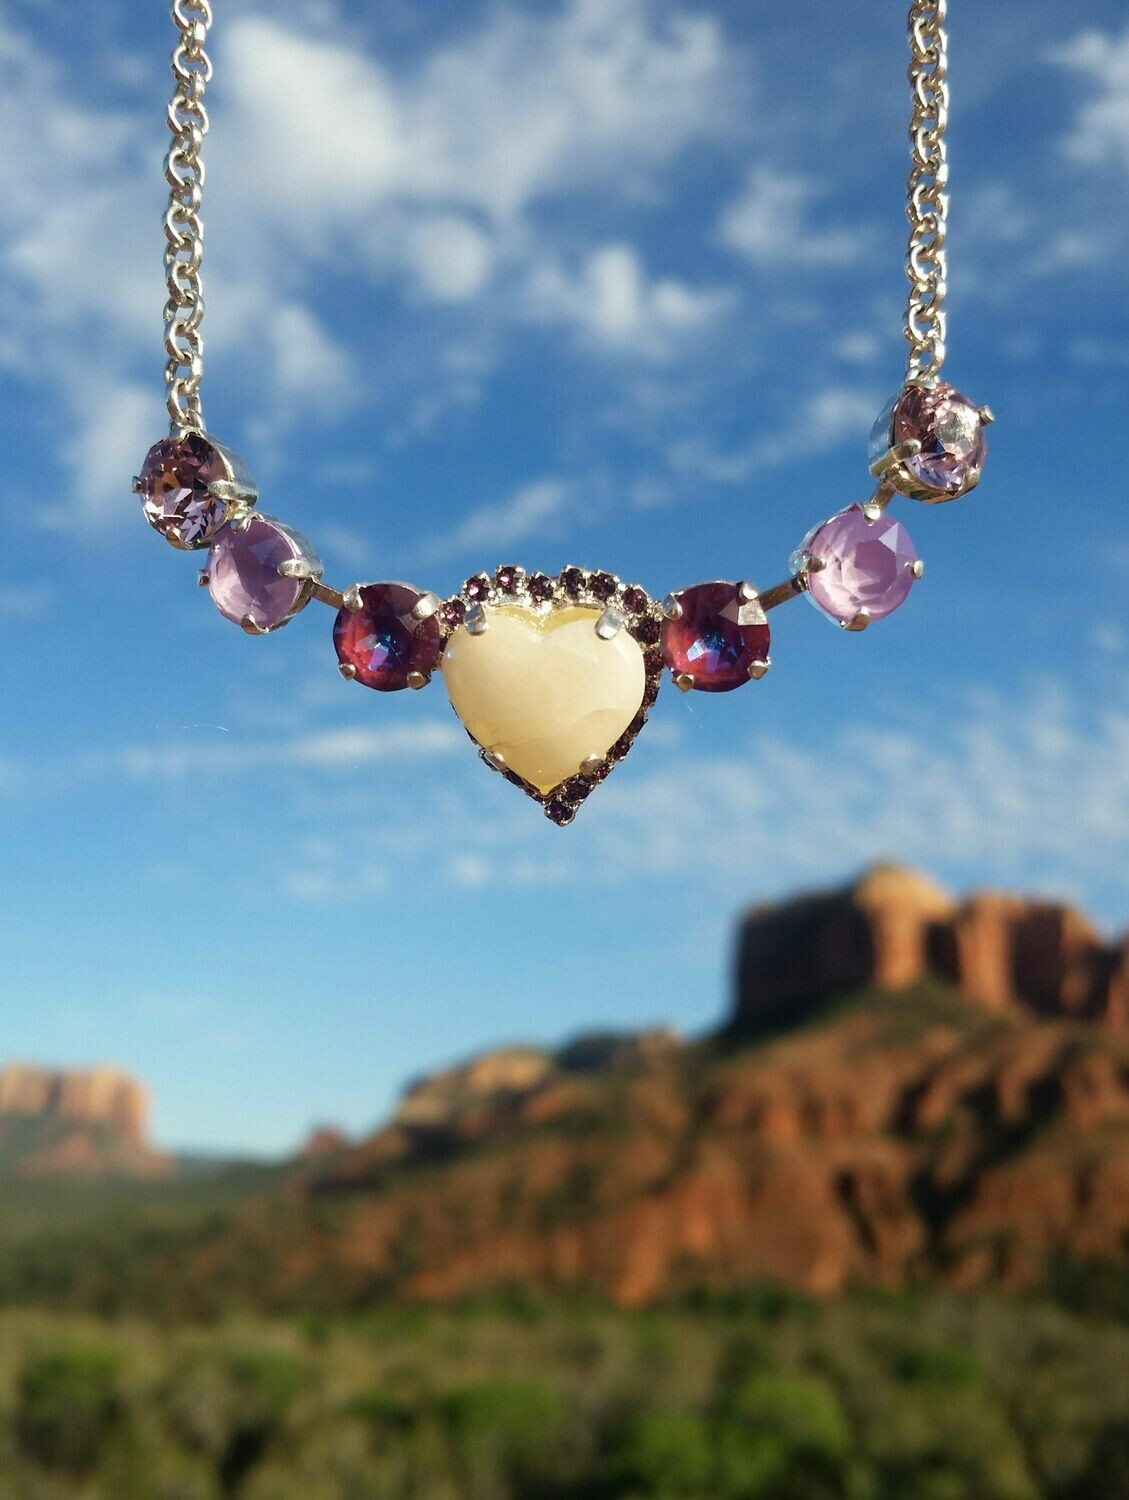 Sedona Sophia Hearts of Mother Earth Gaia Violet  & Pink Ray Healer  Priestess $244.00/$444.000 {Light Workers sale}